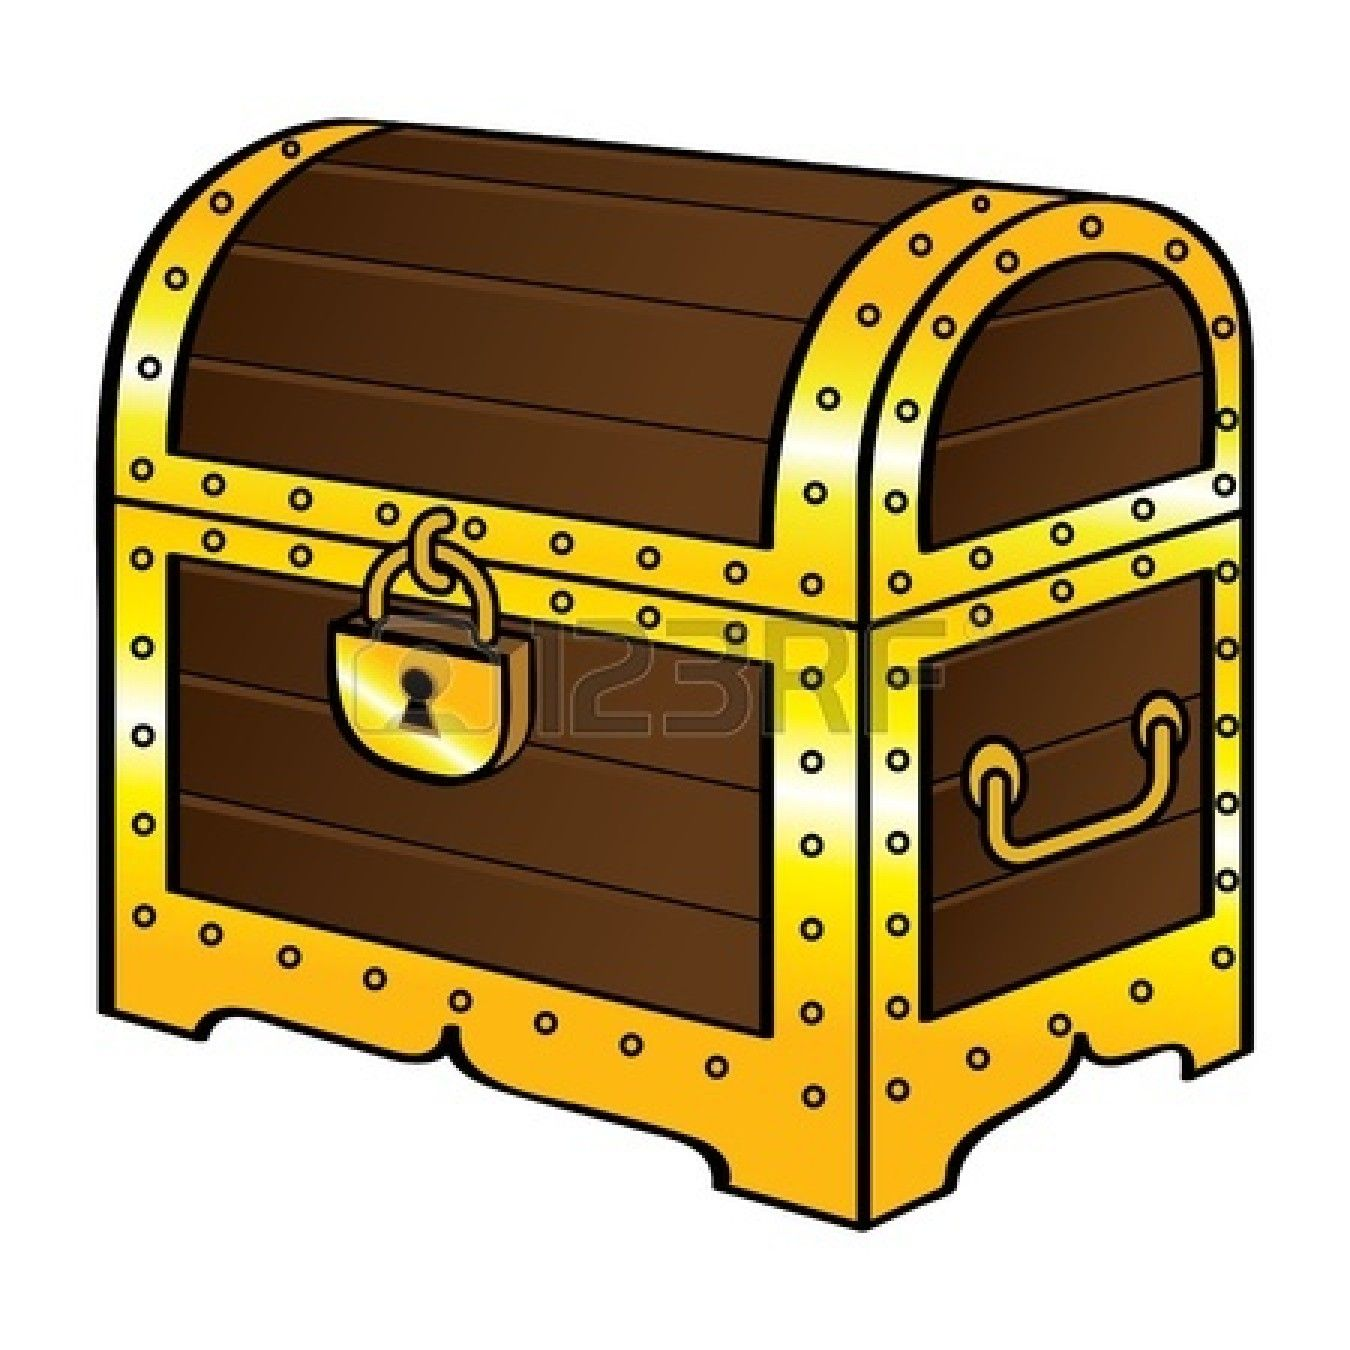 1350x1350 Treasure Chest Stock Vector Illustration And Royalty Free Treasure